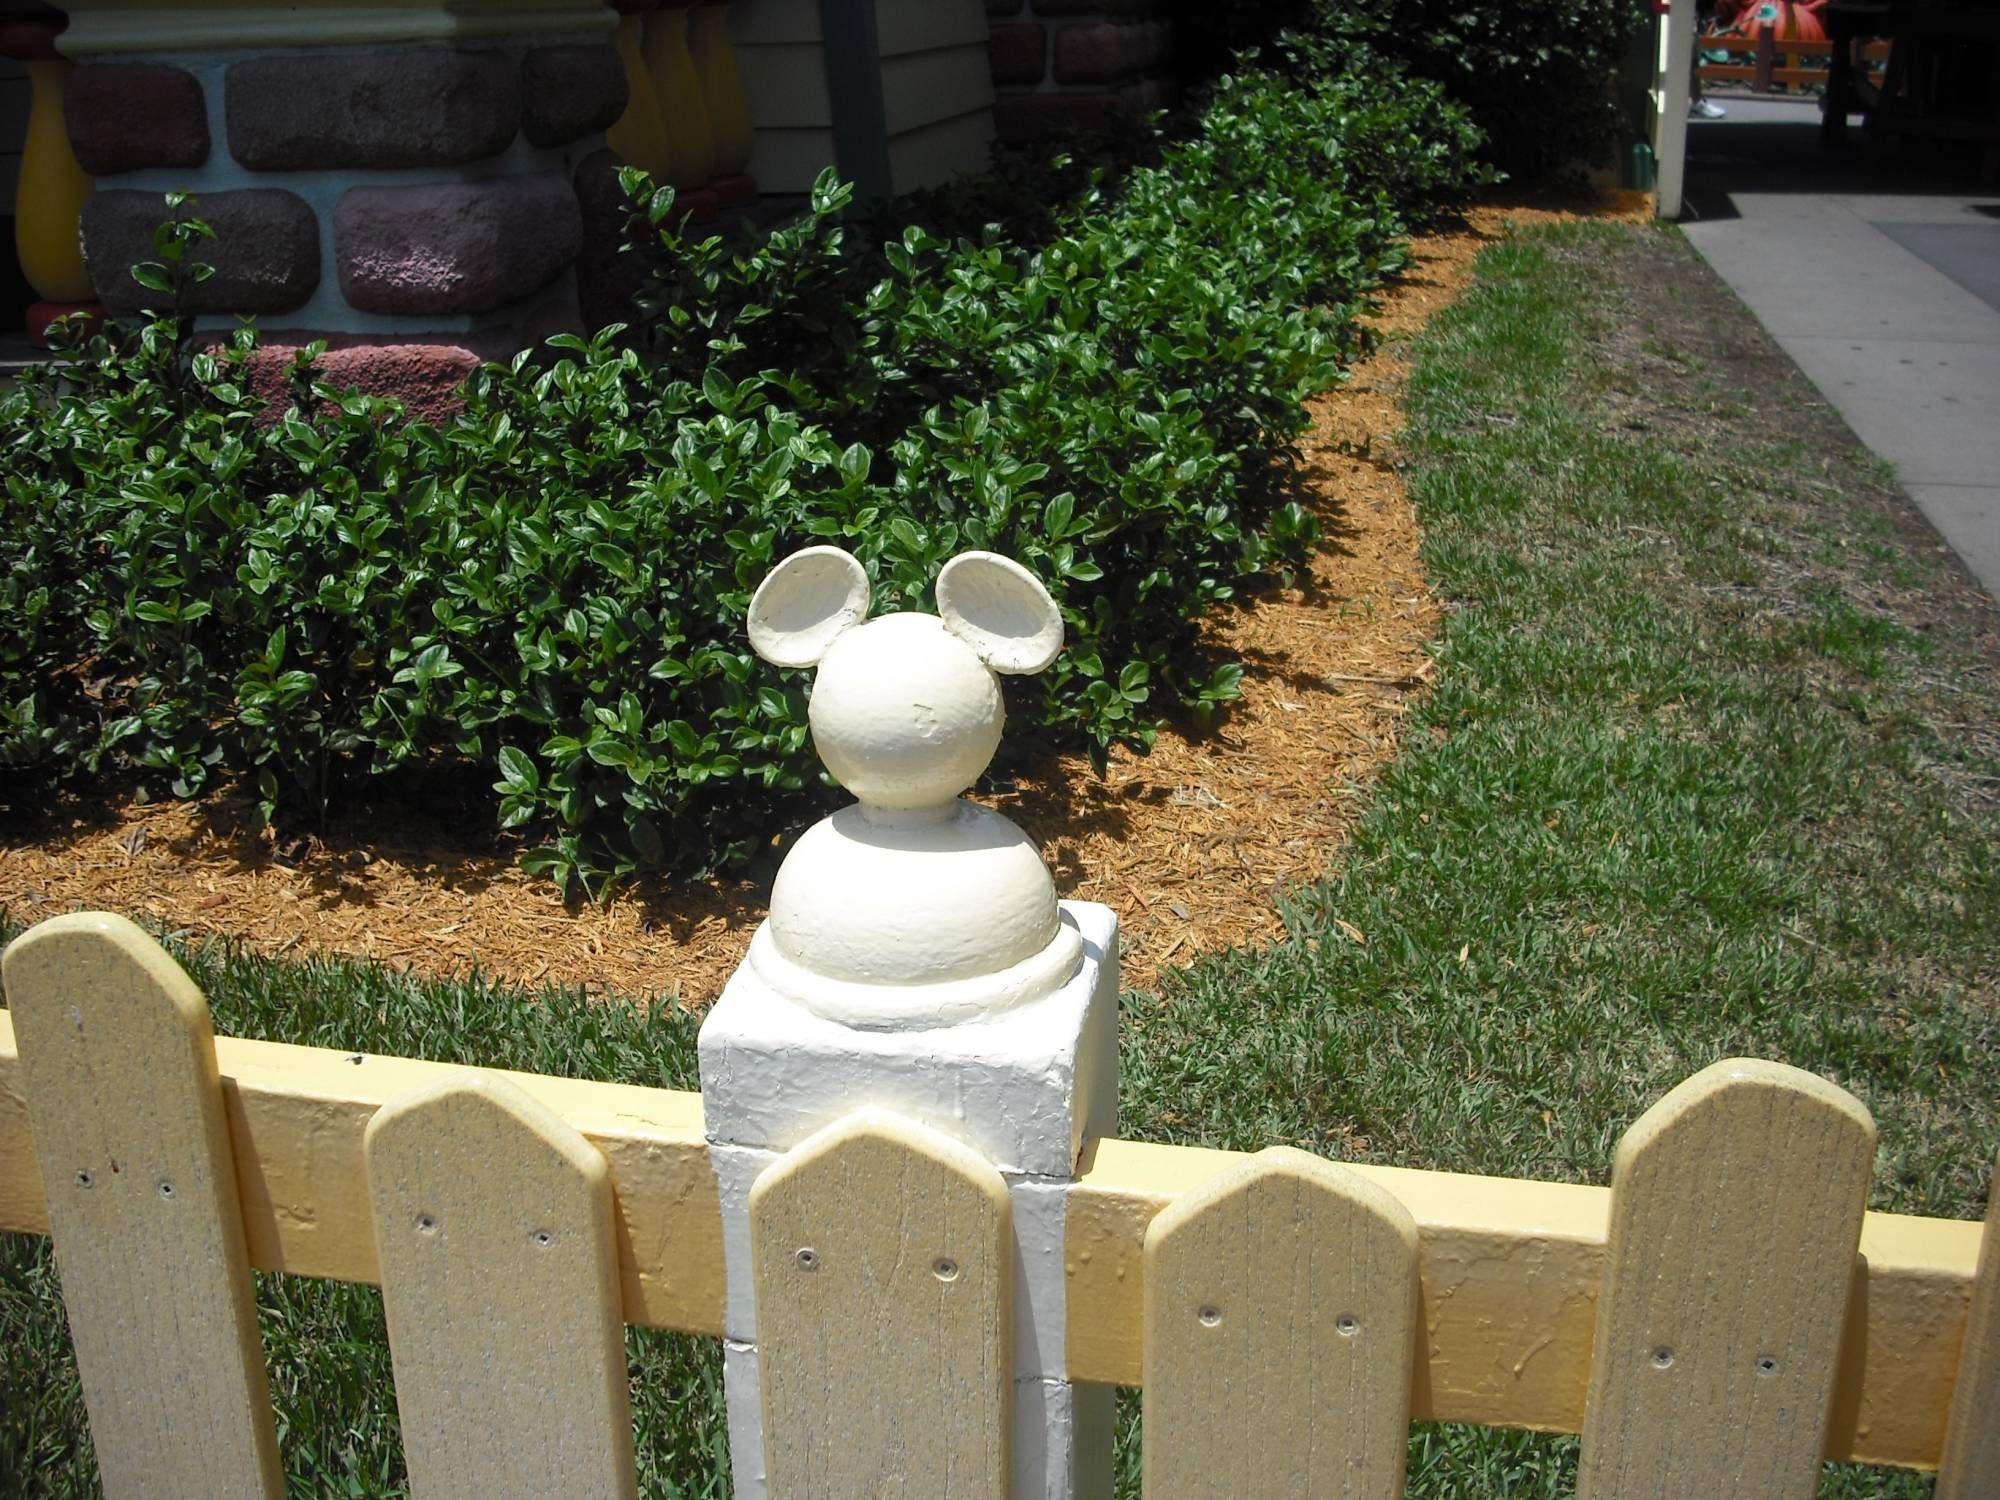 Magic Kingdom - Mickey's fence!